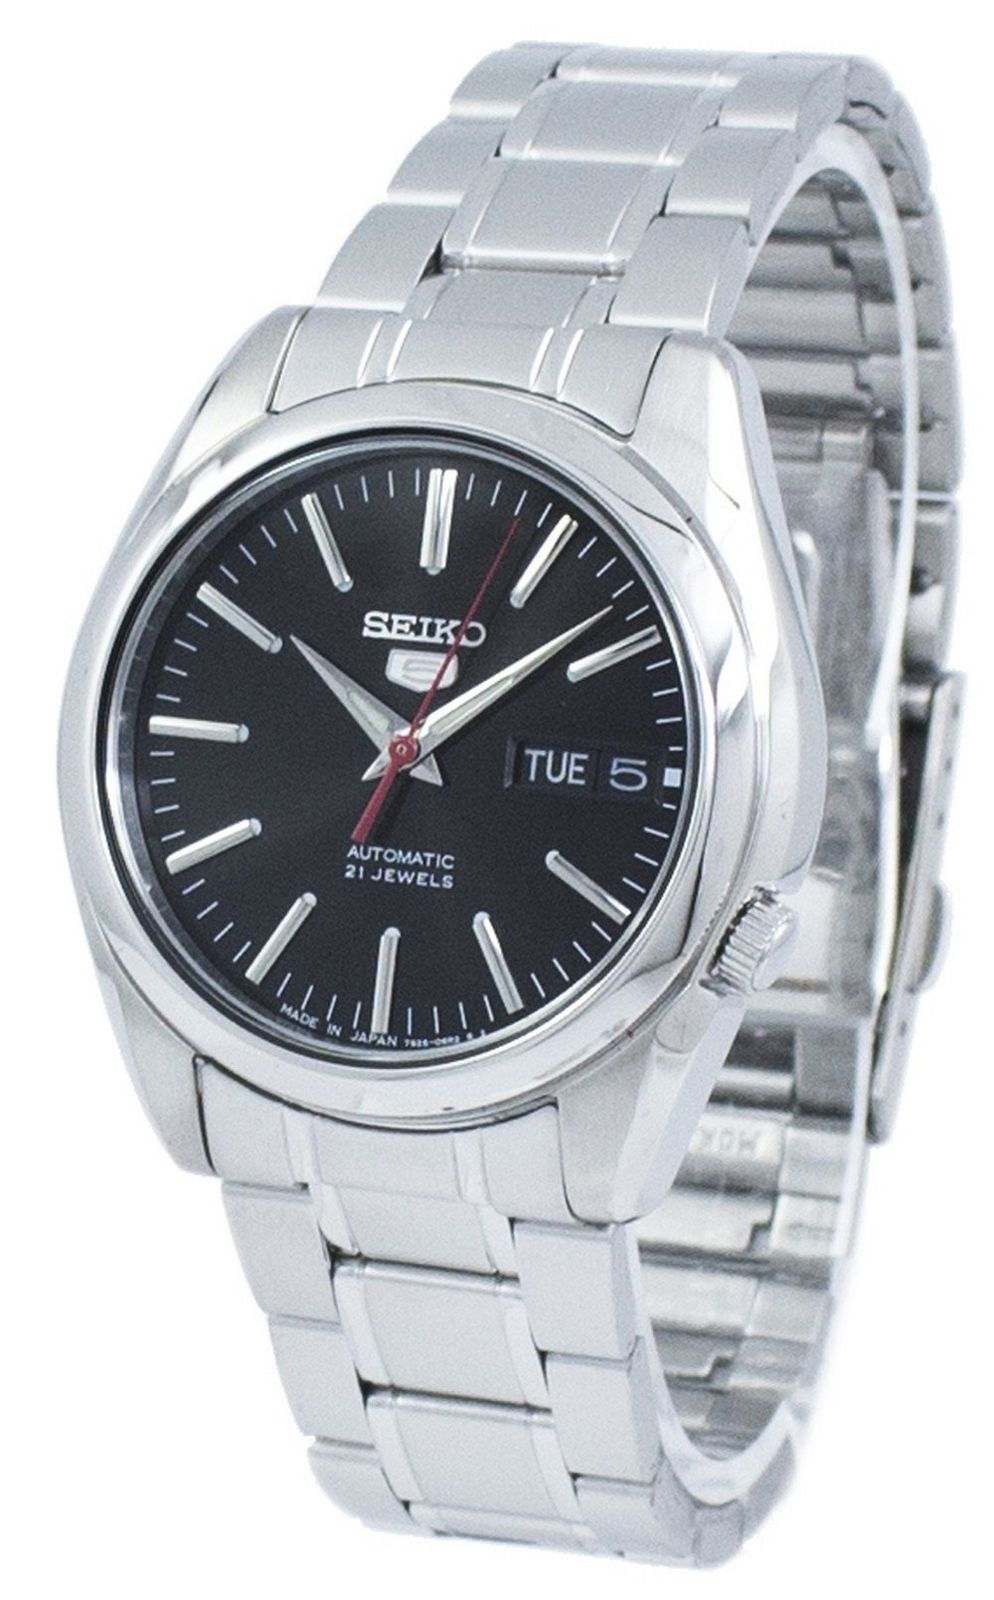 นาฬิกาผู้ชาย Seiko รุ่น SNKL45J1, Seiko 5 Sports Automatic Japan Made Men's Watch